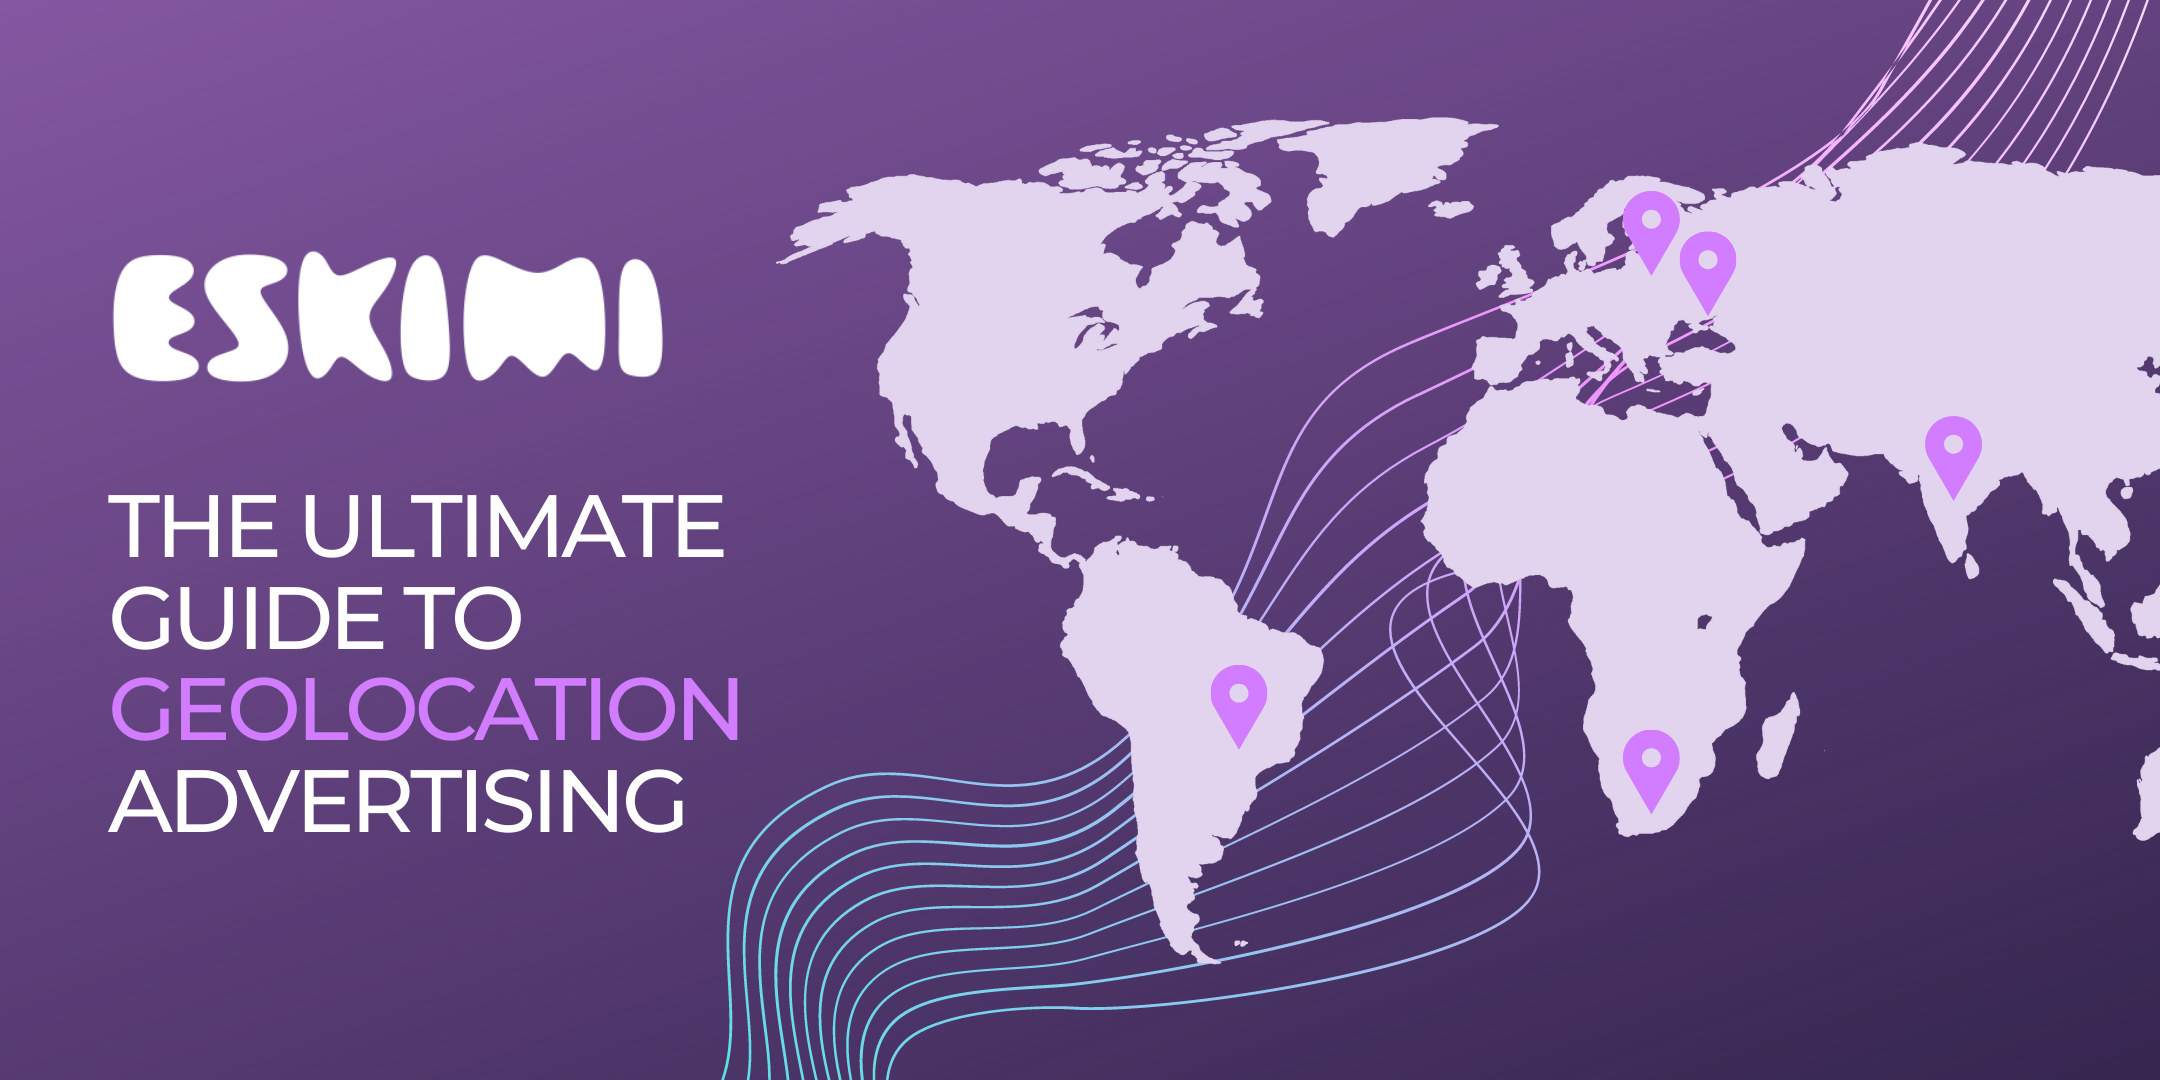 The Ultimate Guide to Geolocation Advertising